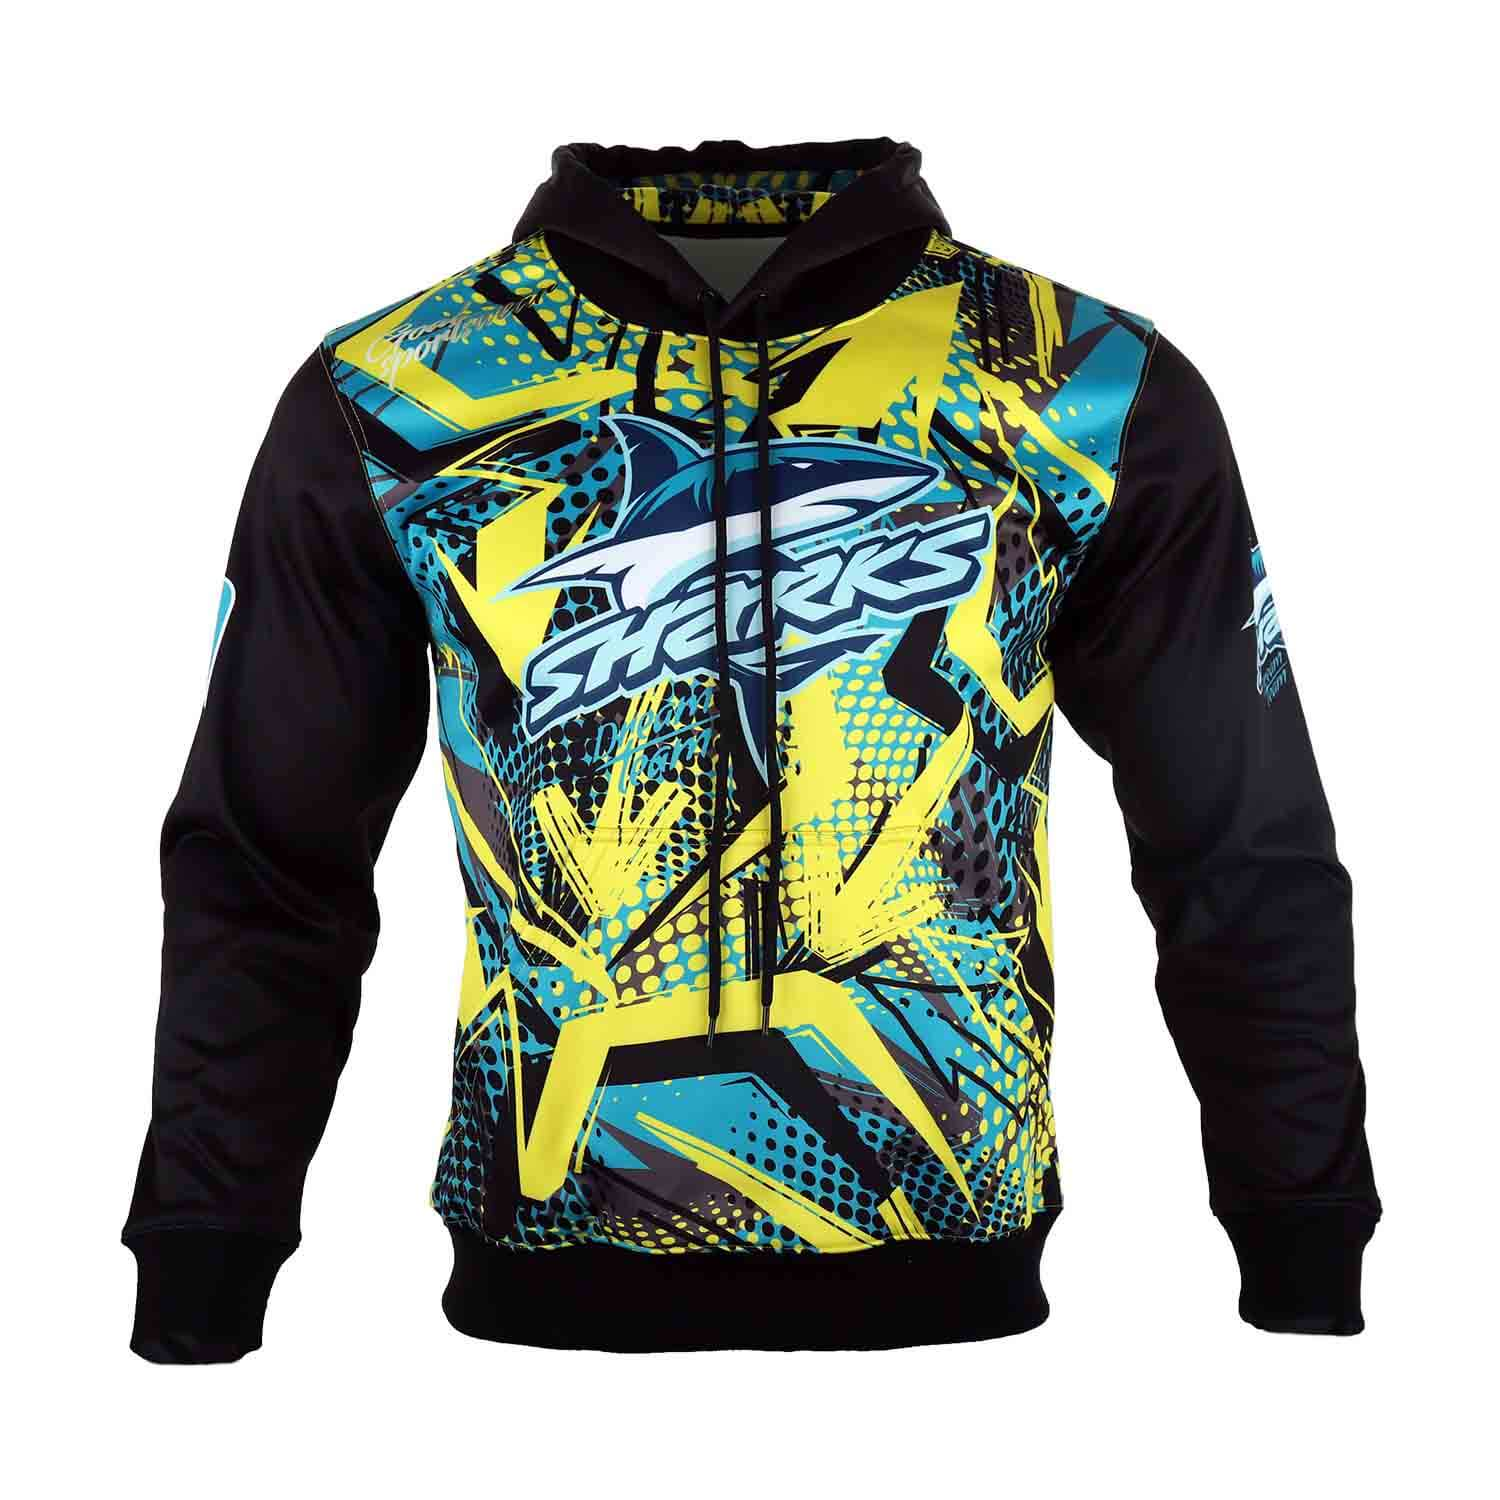 Sublimated Pull Over hoodie